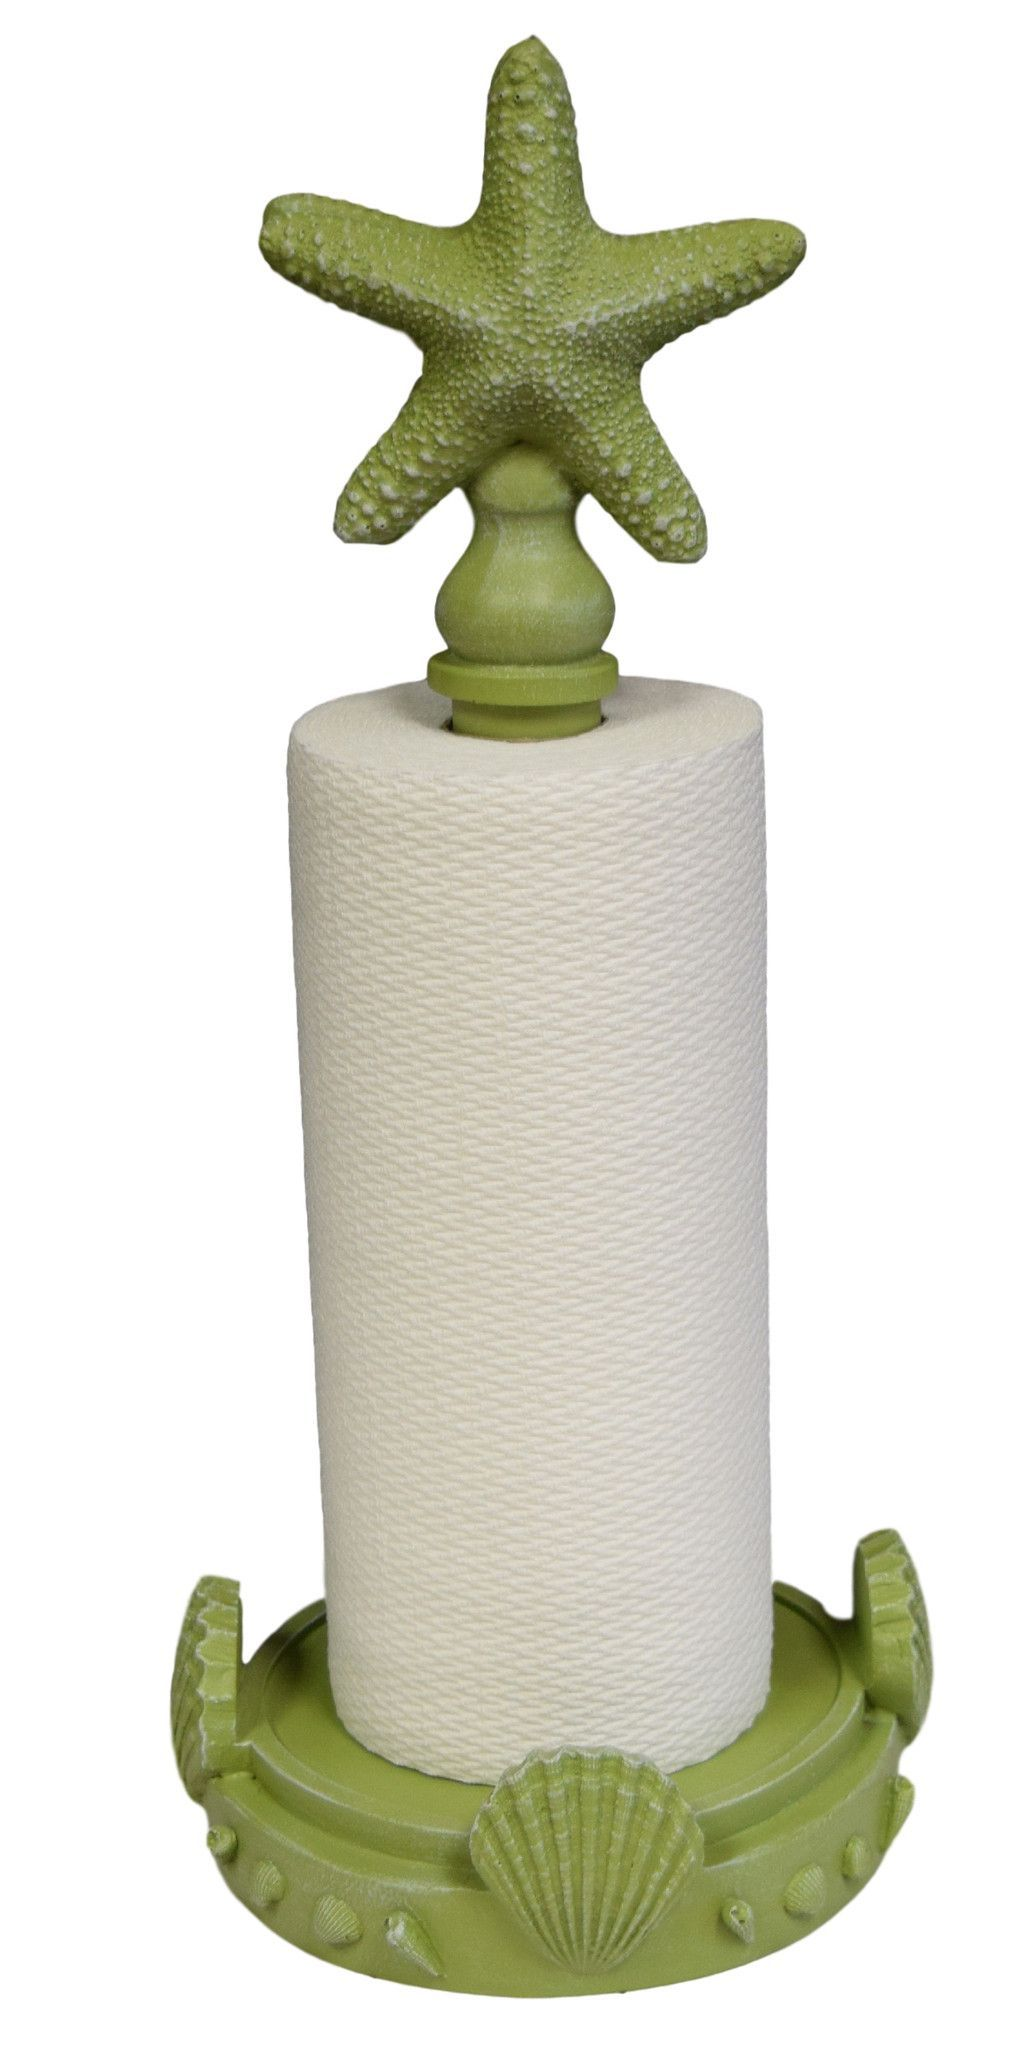 Coastal Paper Towel Holder Pleasing Starfish Top Standing Paper Towel Holder In Coastal Green Color Inspiration